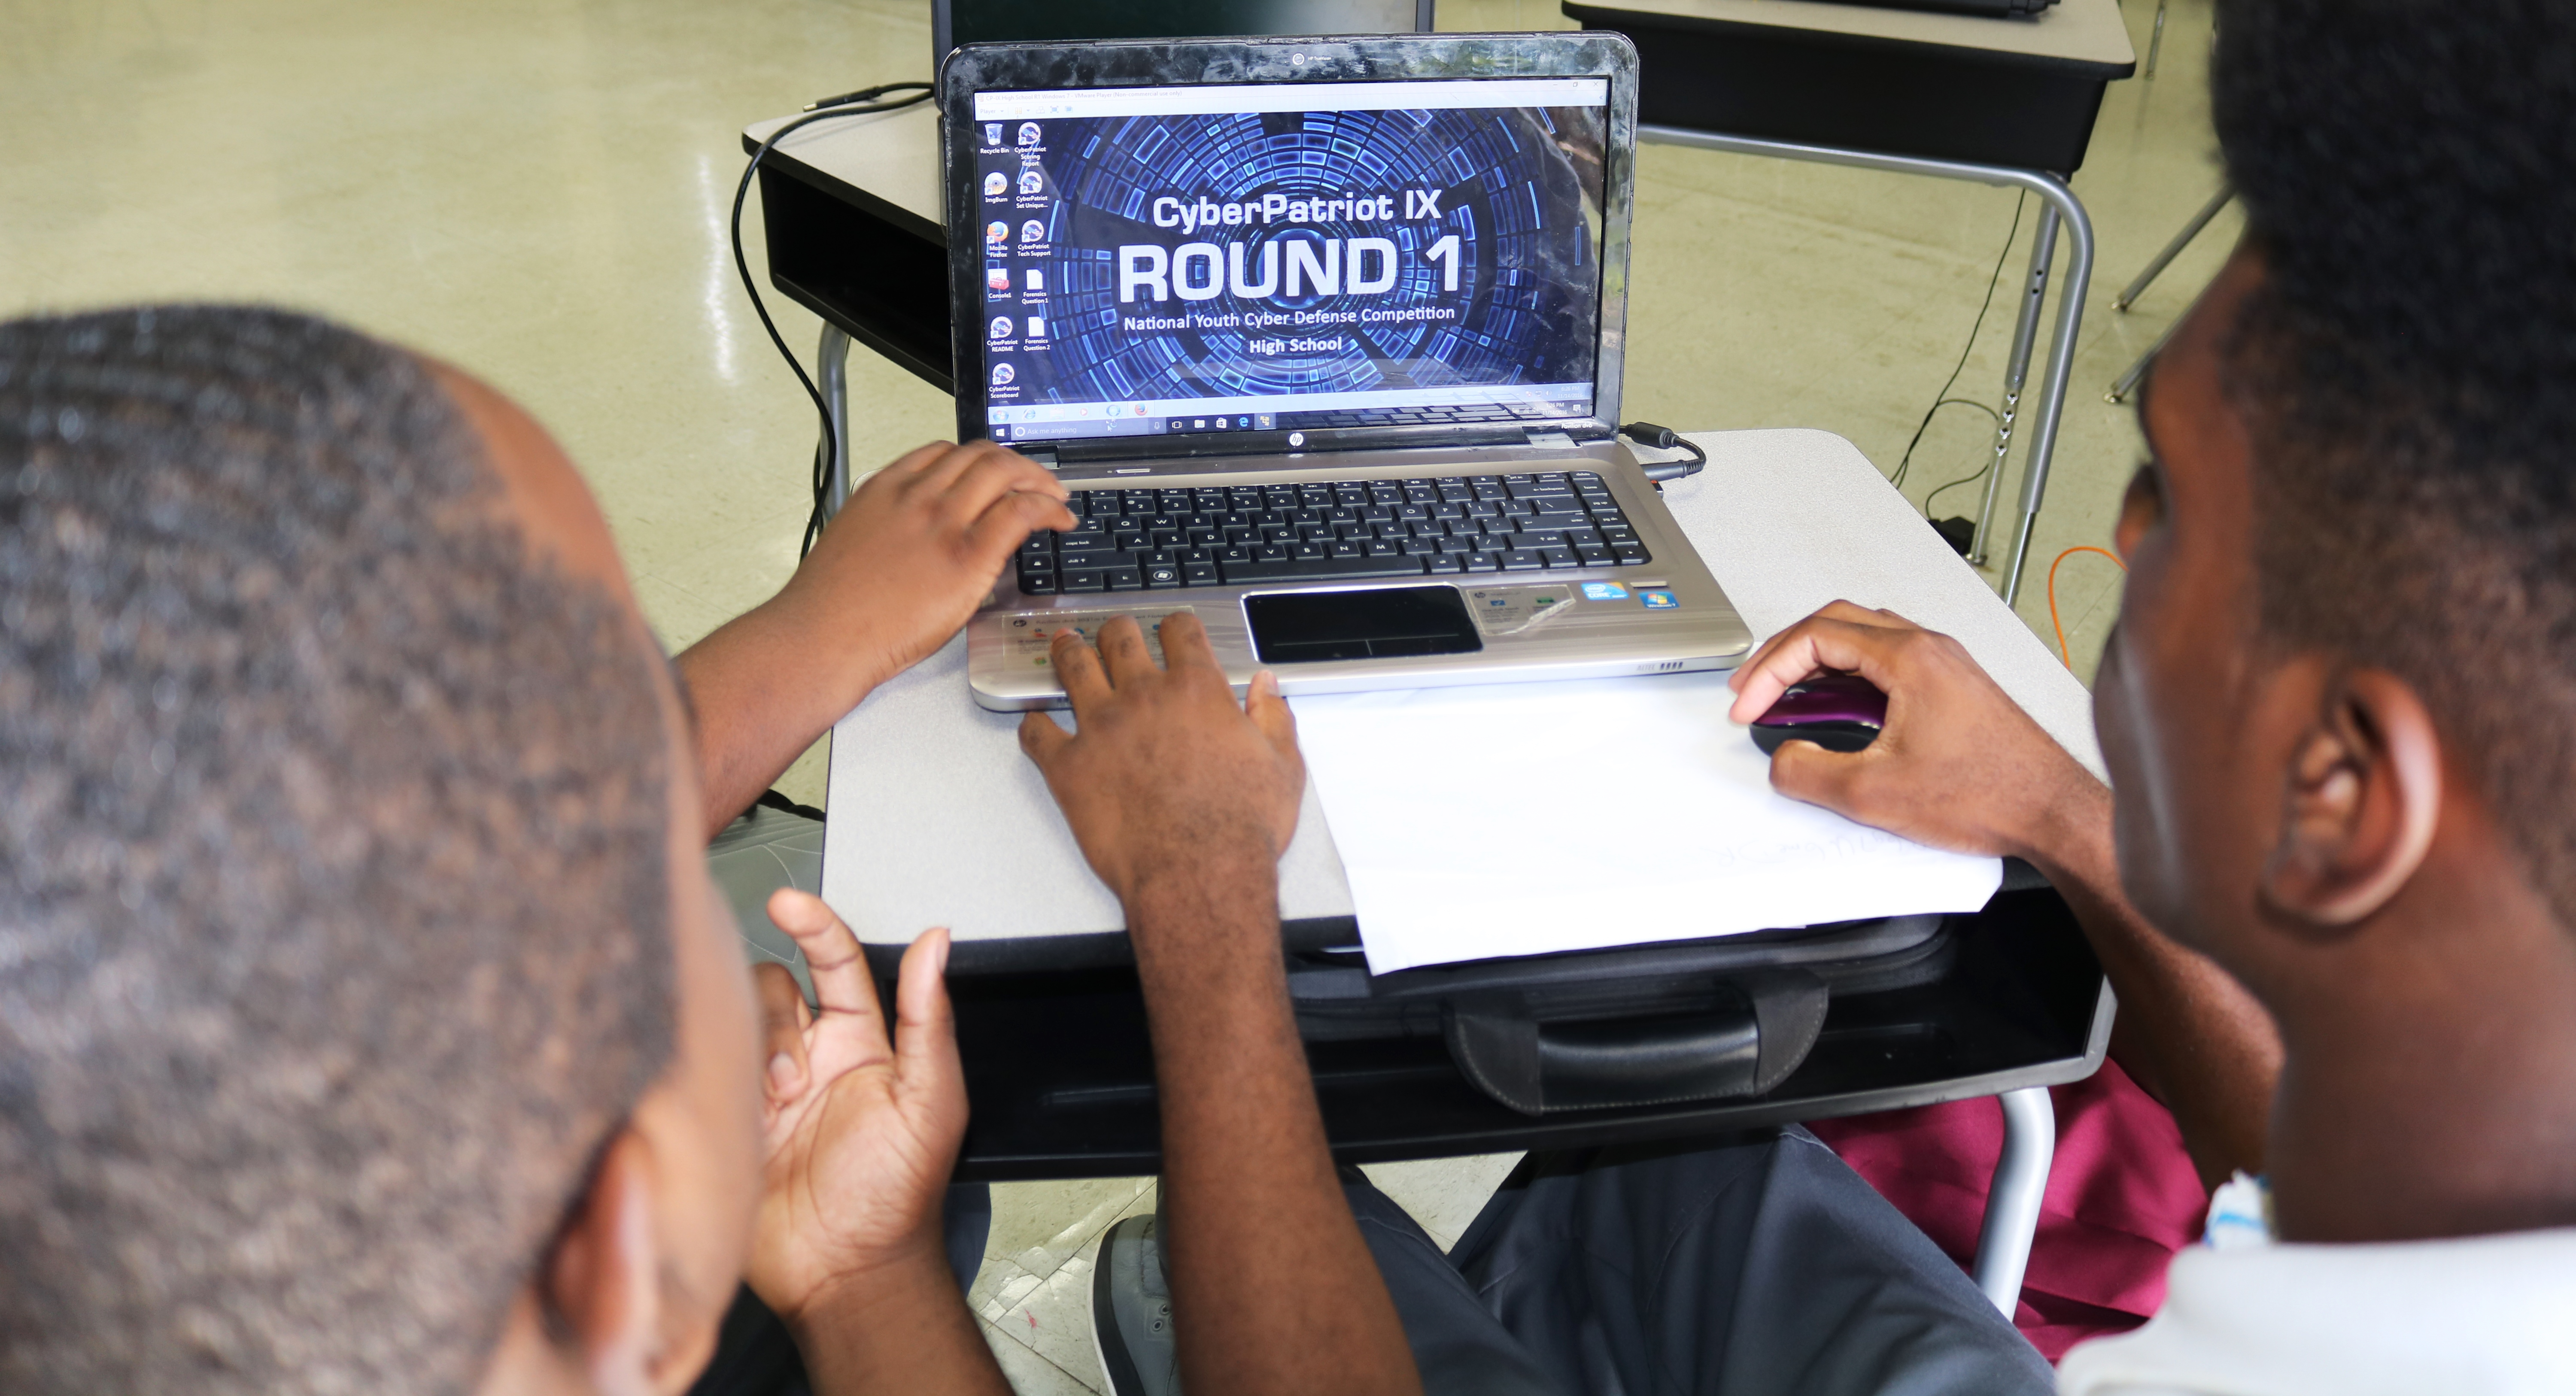 St. Croix Teams Complete Round 1 In CyberPatriot Competition